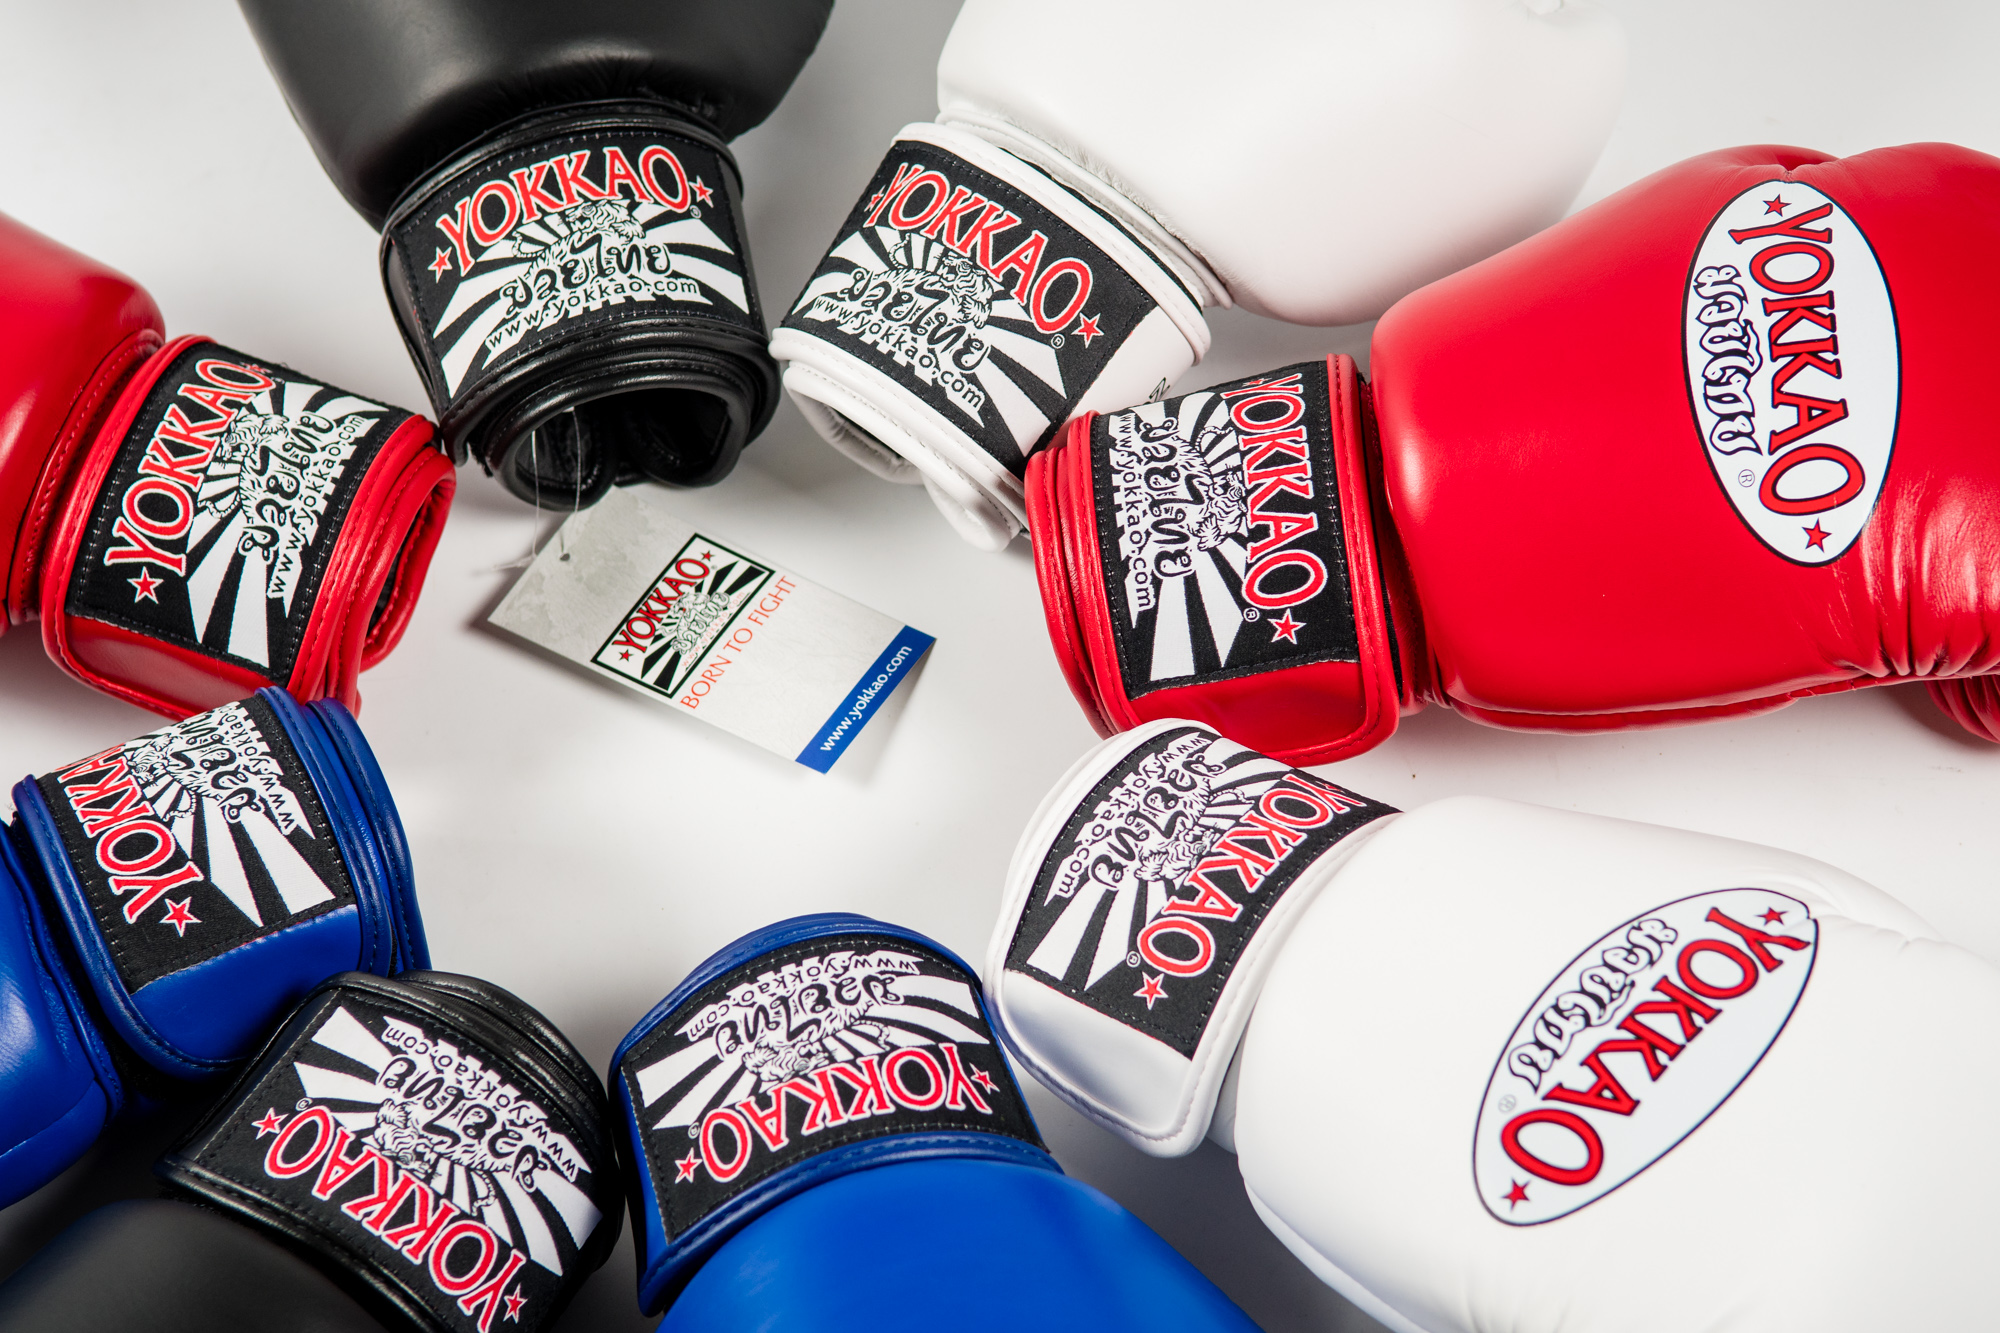 Yokkao Fight Gear